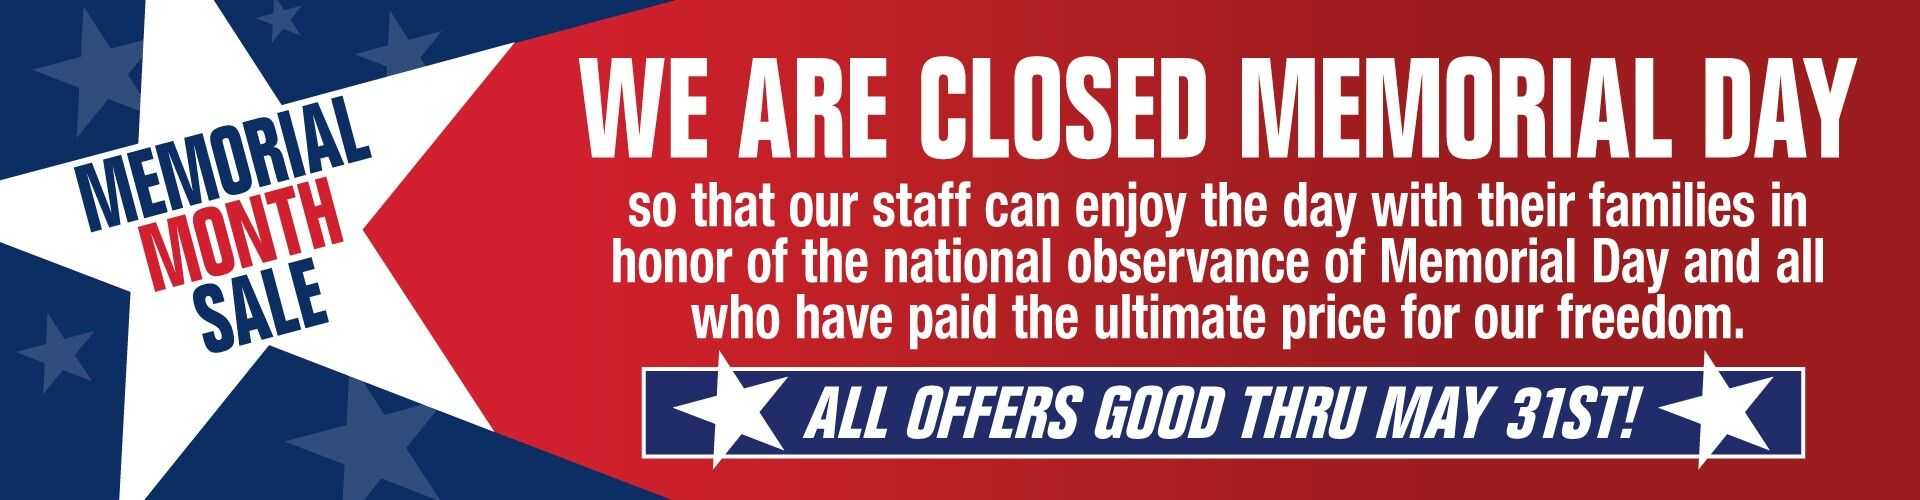 We are Closed to honor Memorial Day